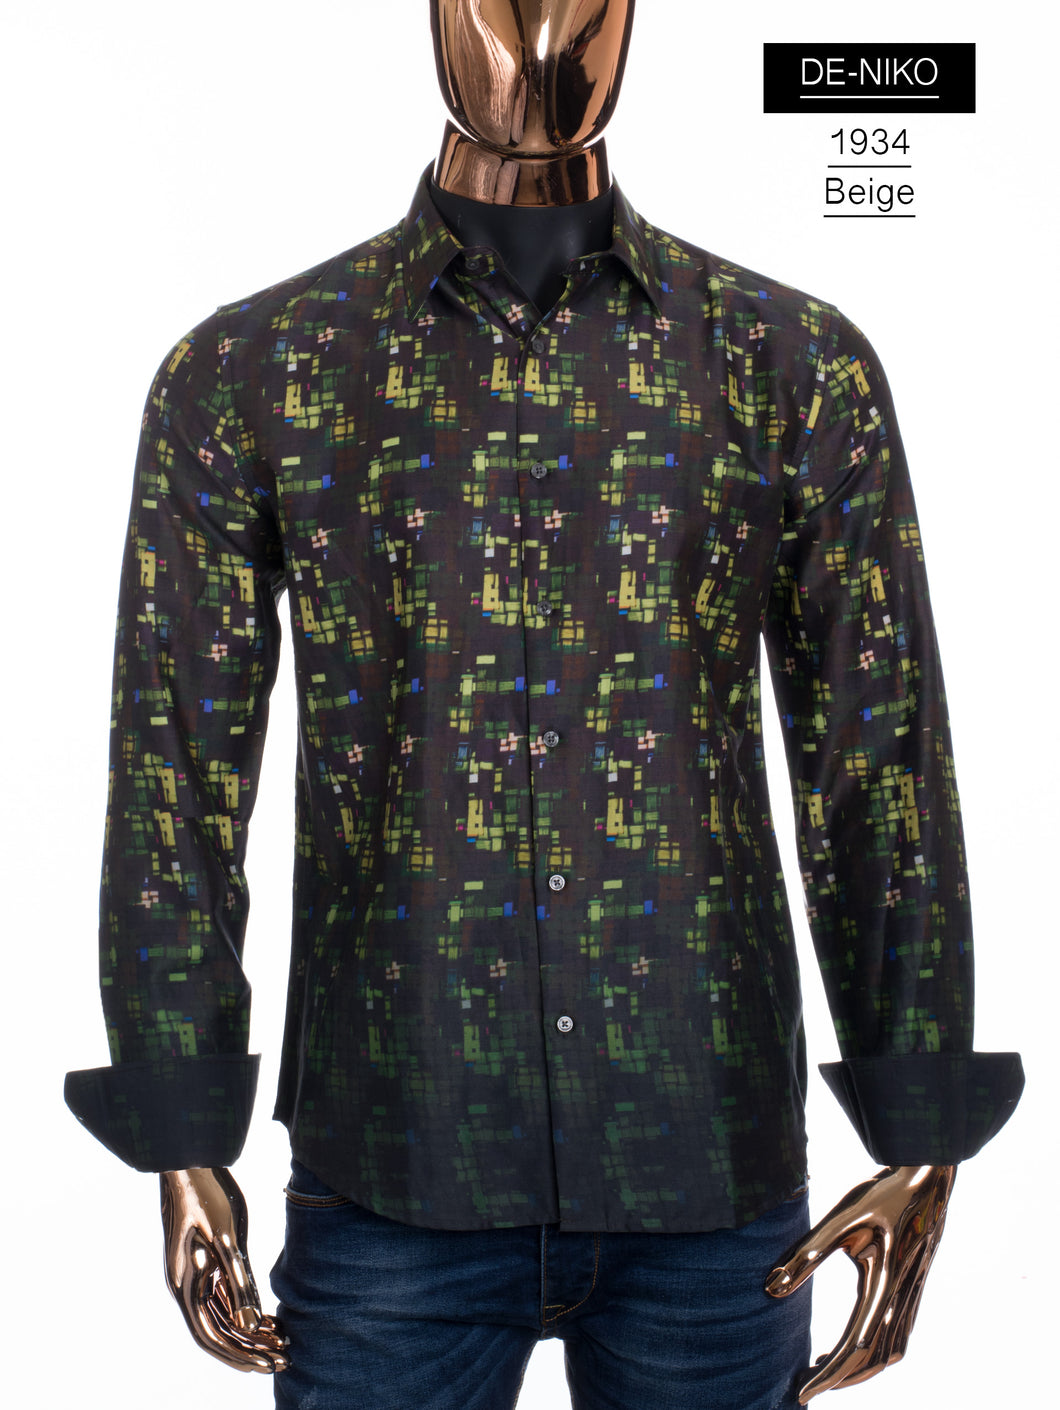 De-Niko Beige Button Up Retro Style Black Green Pixelated Dress Shirt